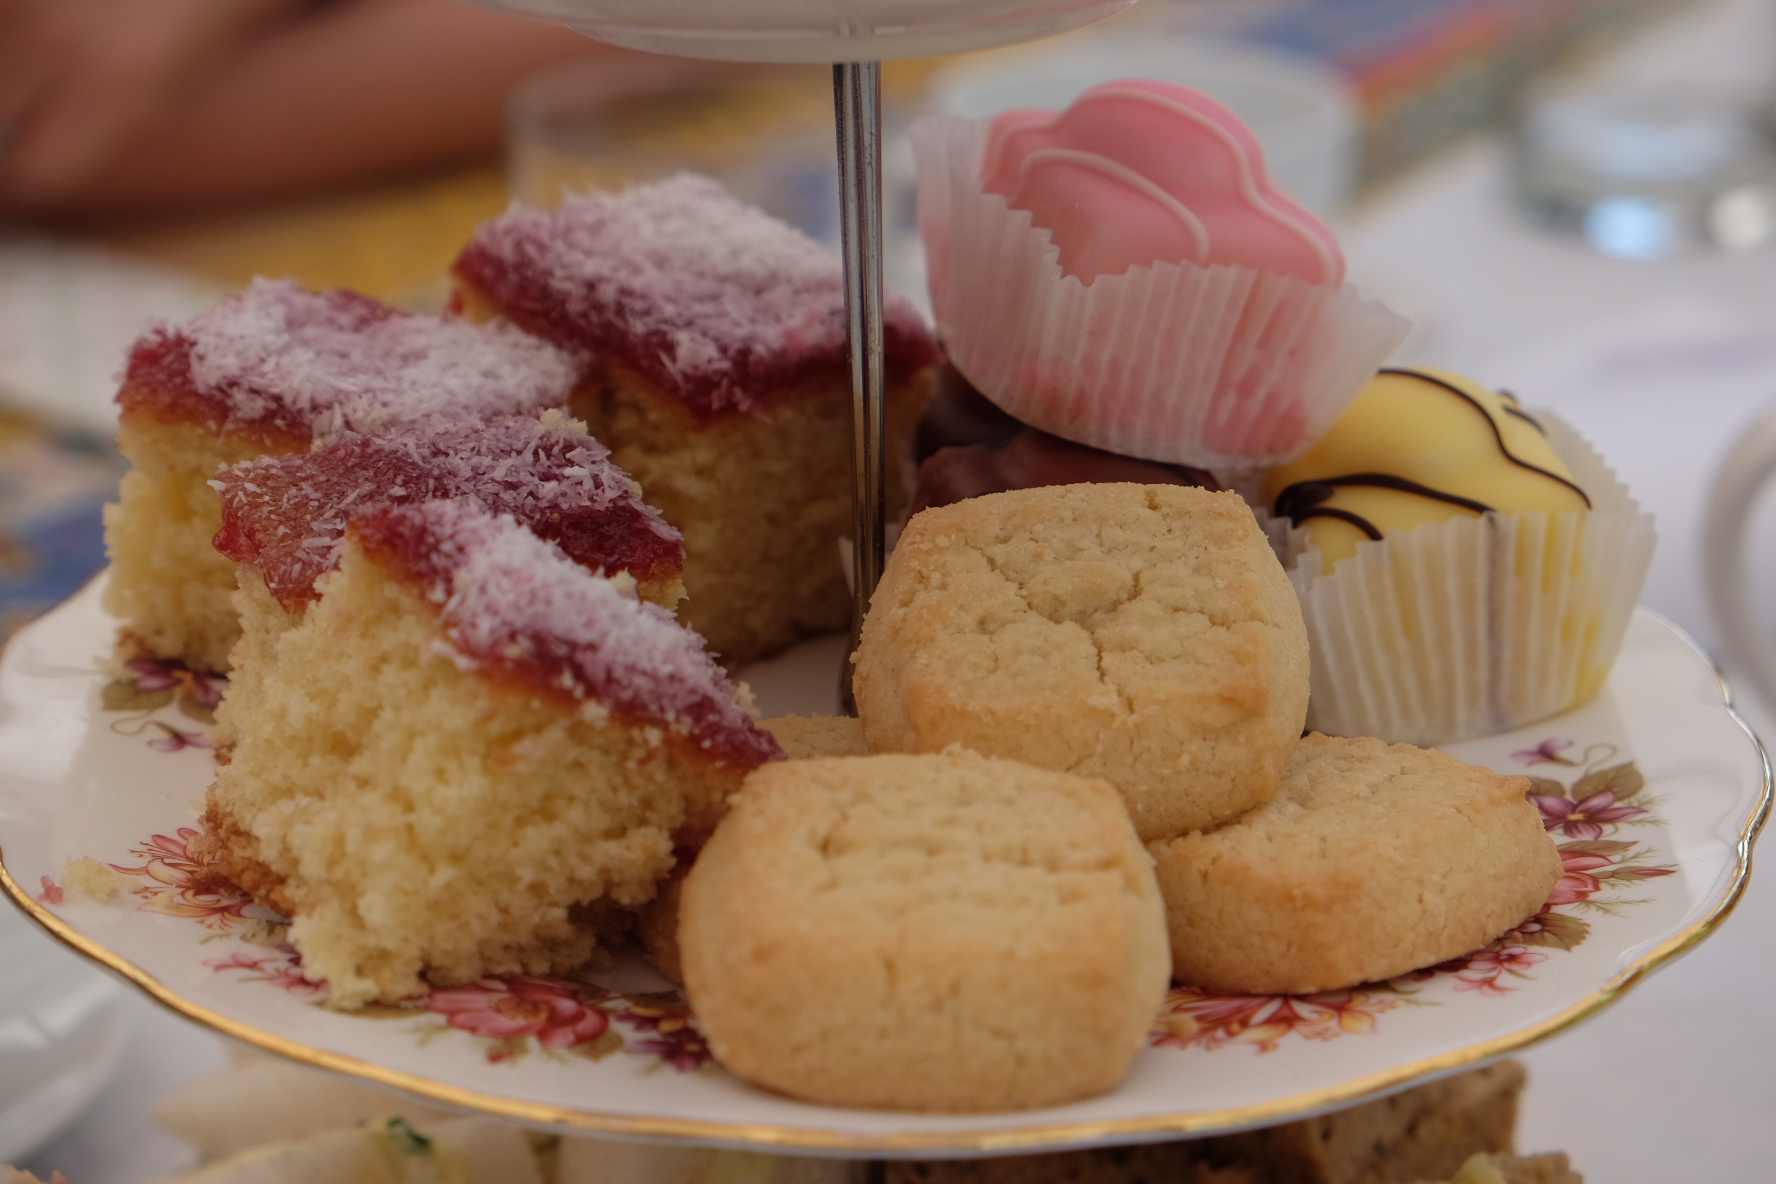 http://A%20close-up%20of%20a%20selection%20of%20afternoon%20tea%20cakes.%20We%20can%20see%20mini%20round%20shortbreads,%20small%20squares%20of%20jam%20and%20coconut%20sponge%20and%20some%20fondant%20fancies.